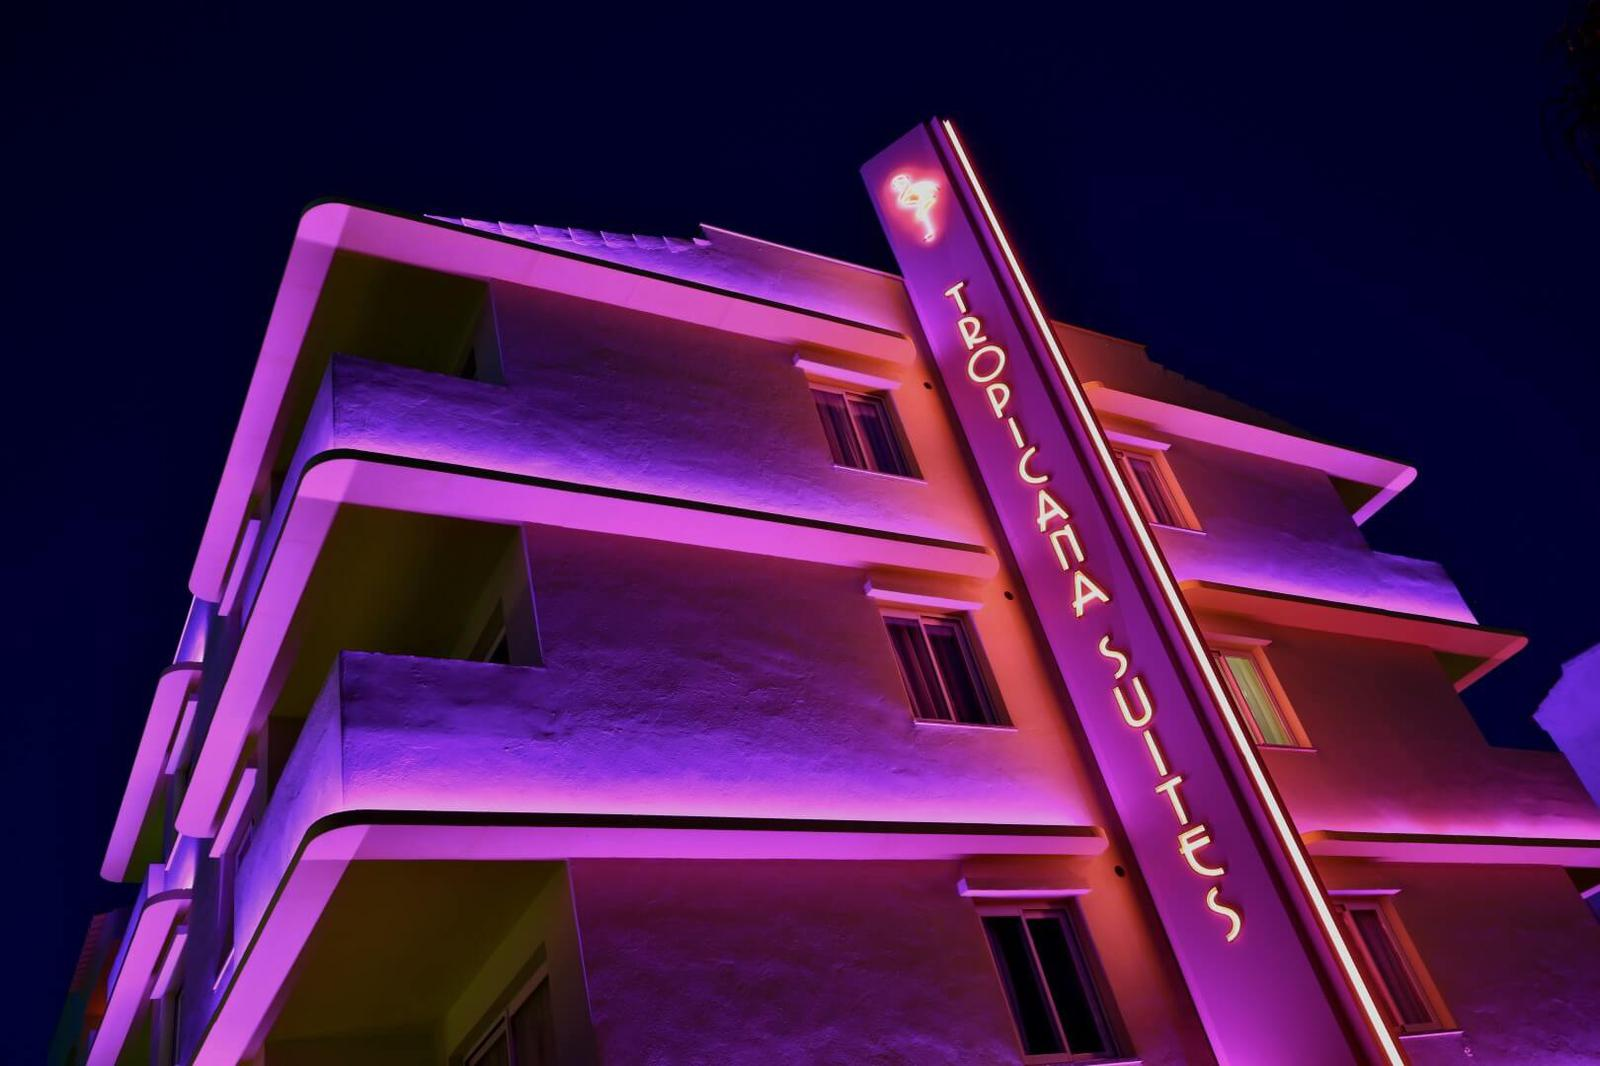 Viajar a Miami de los 80 en este increíble hotel en Playa d'en Bossa (Ibiza) Photo credit__Adam Johnston_AJP_1714